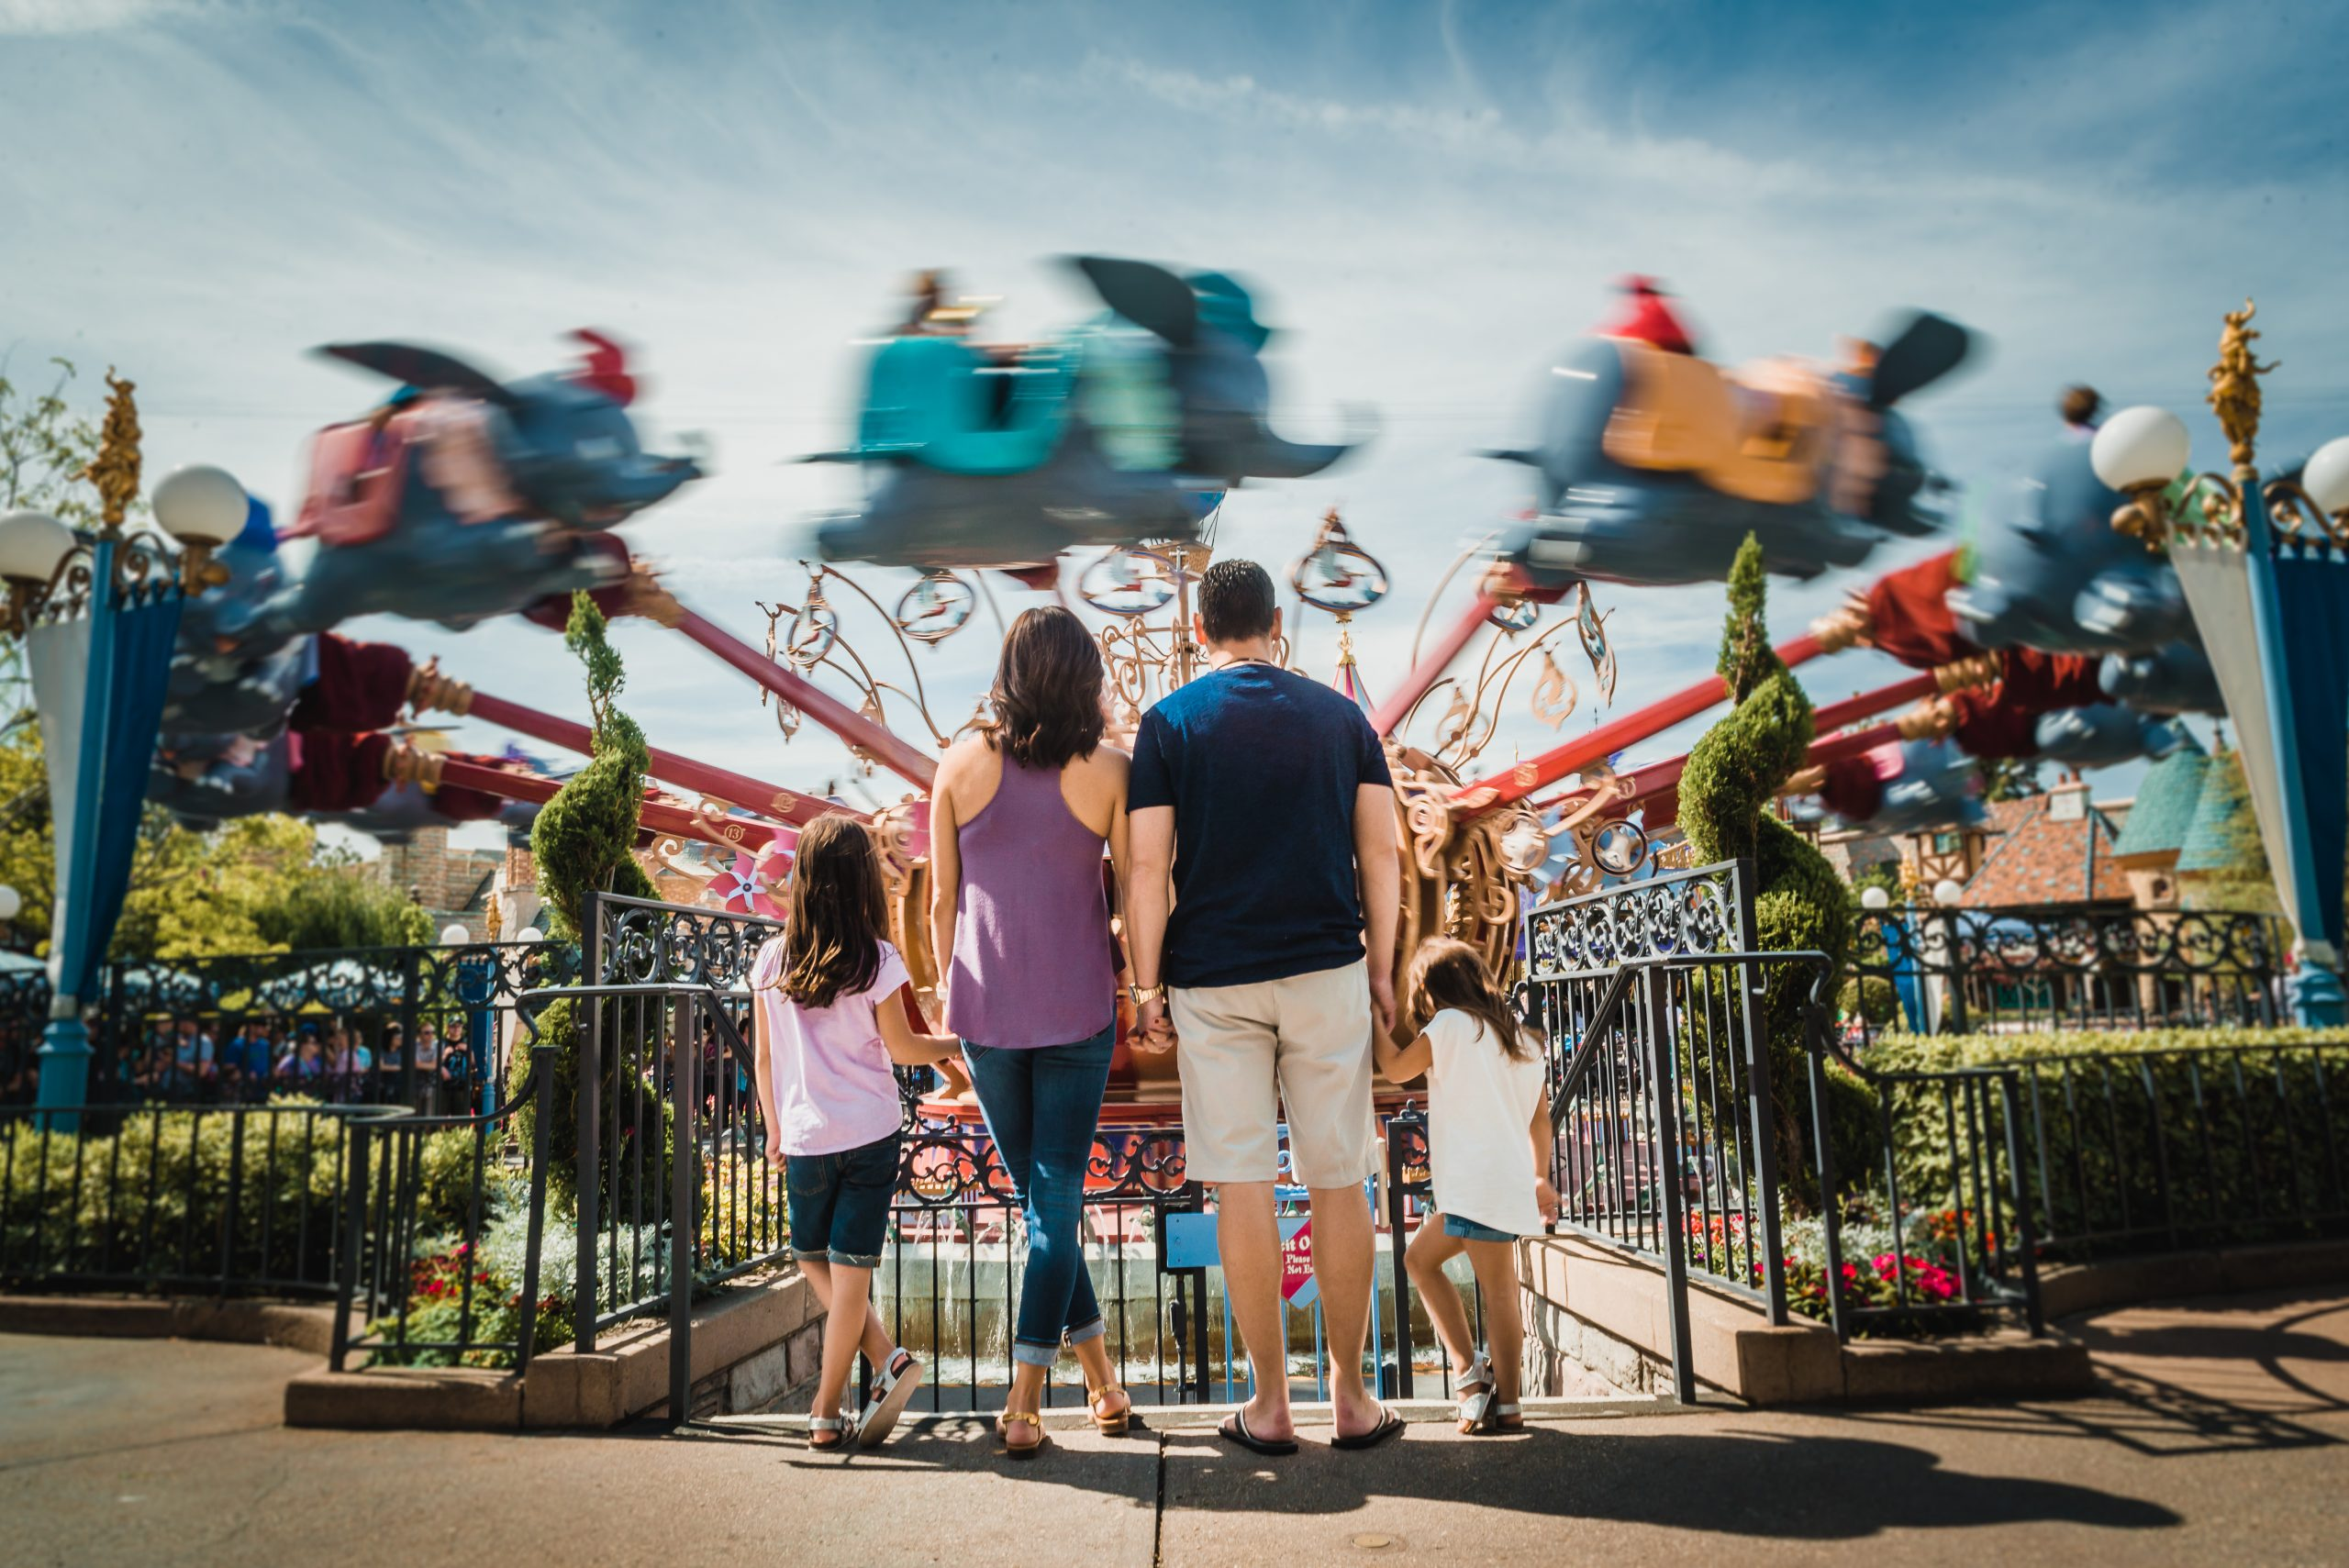 Family posing in front of the Dumbo ride in Disneyland